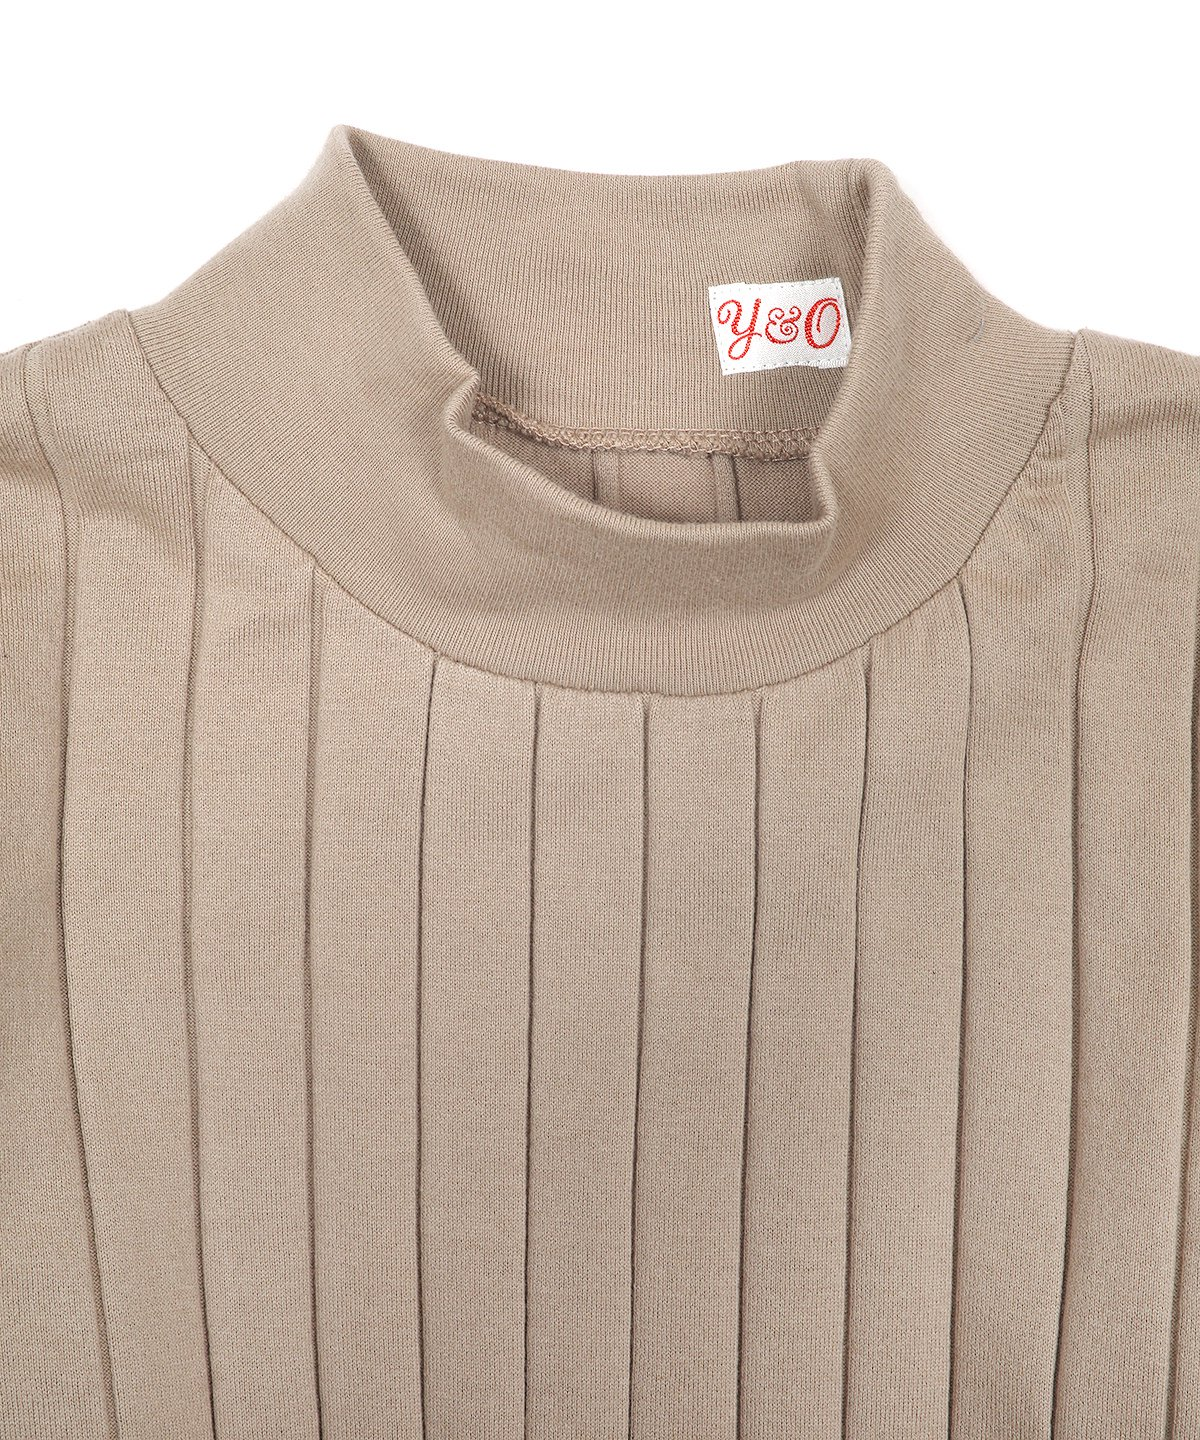 BROAD RIB HI NECK LS